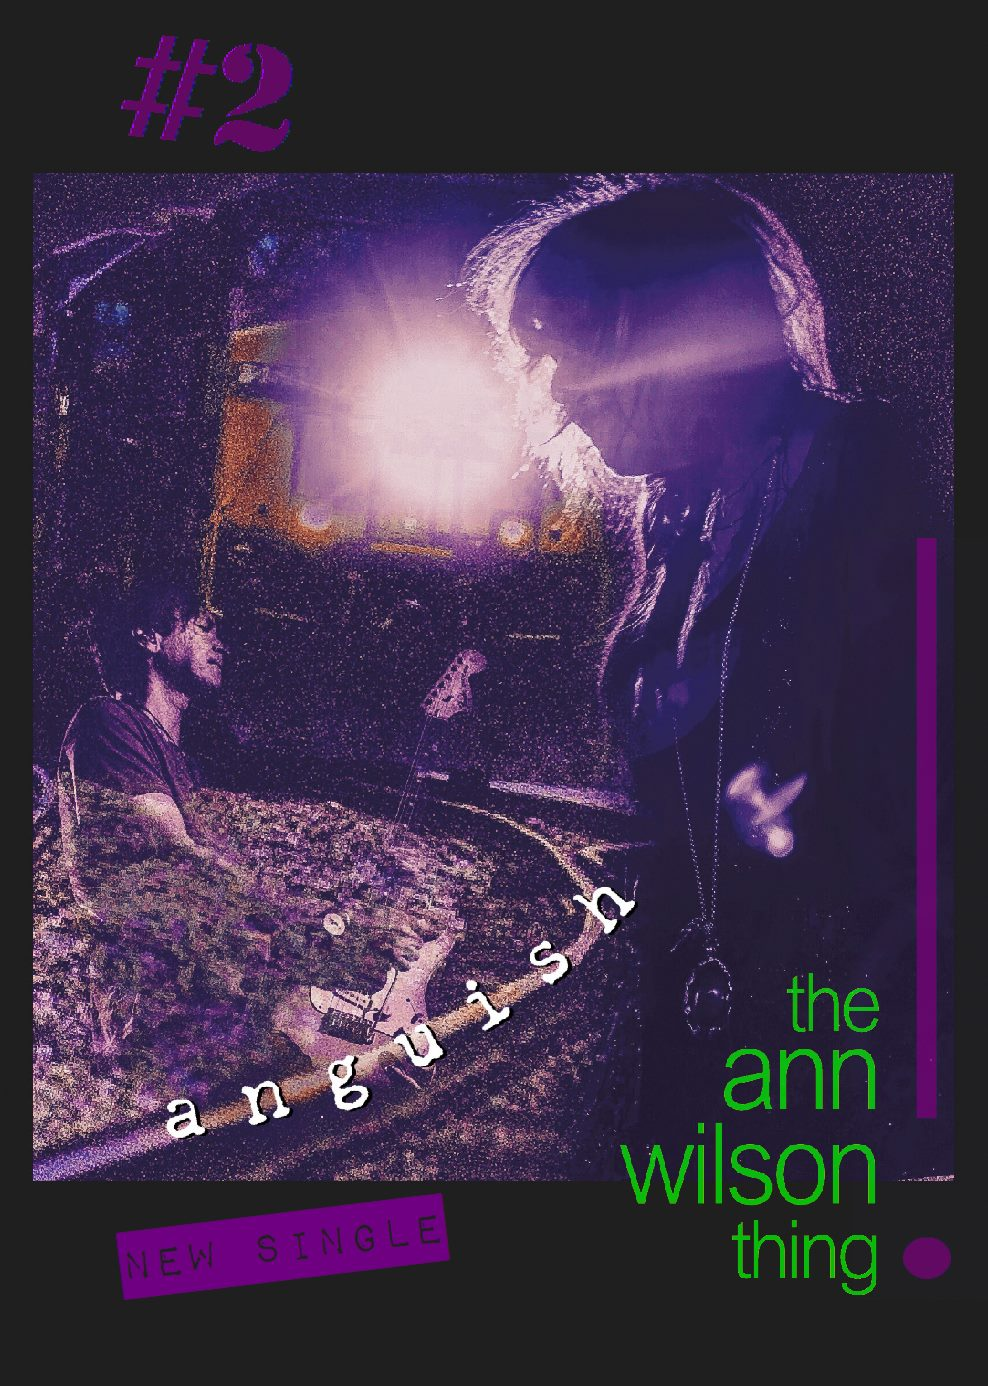 The ann wilson thing - anguish poster